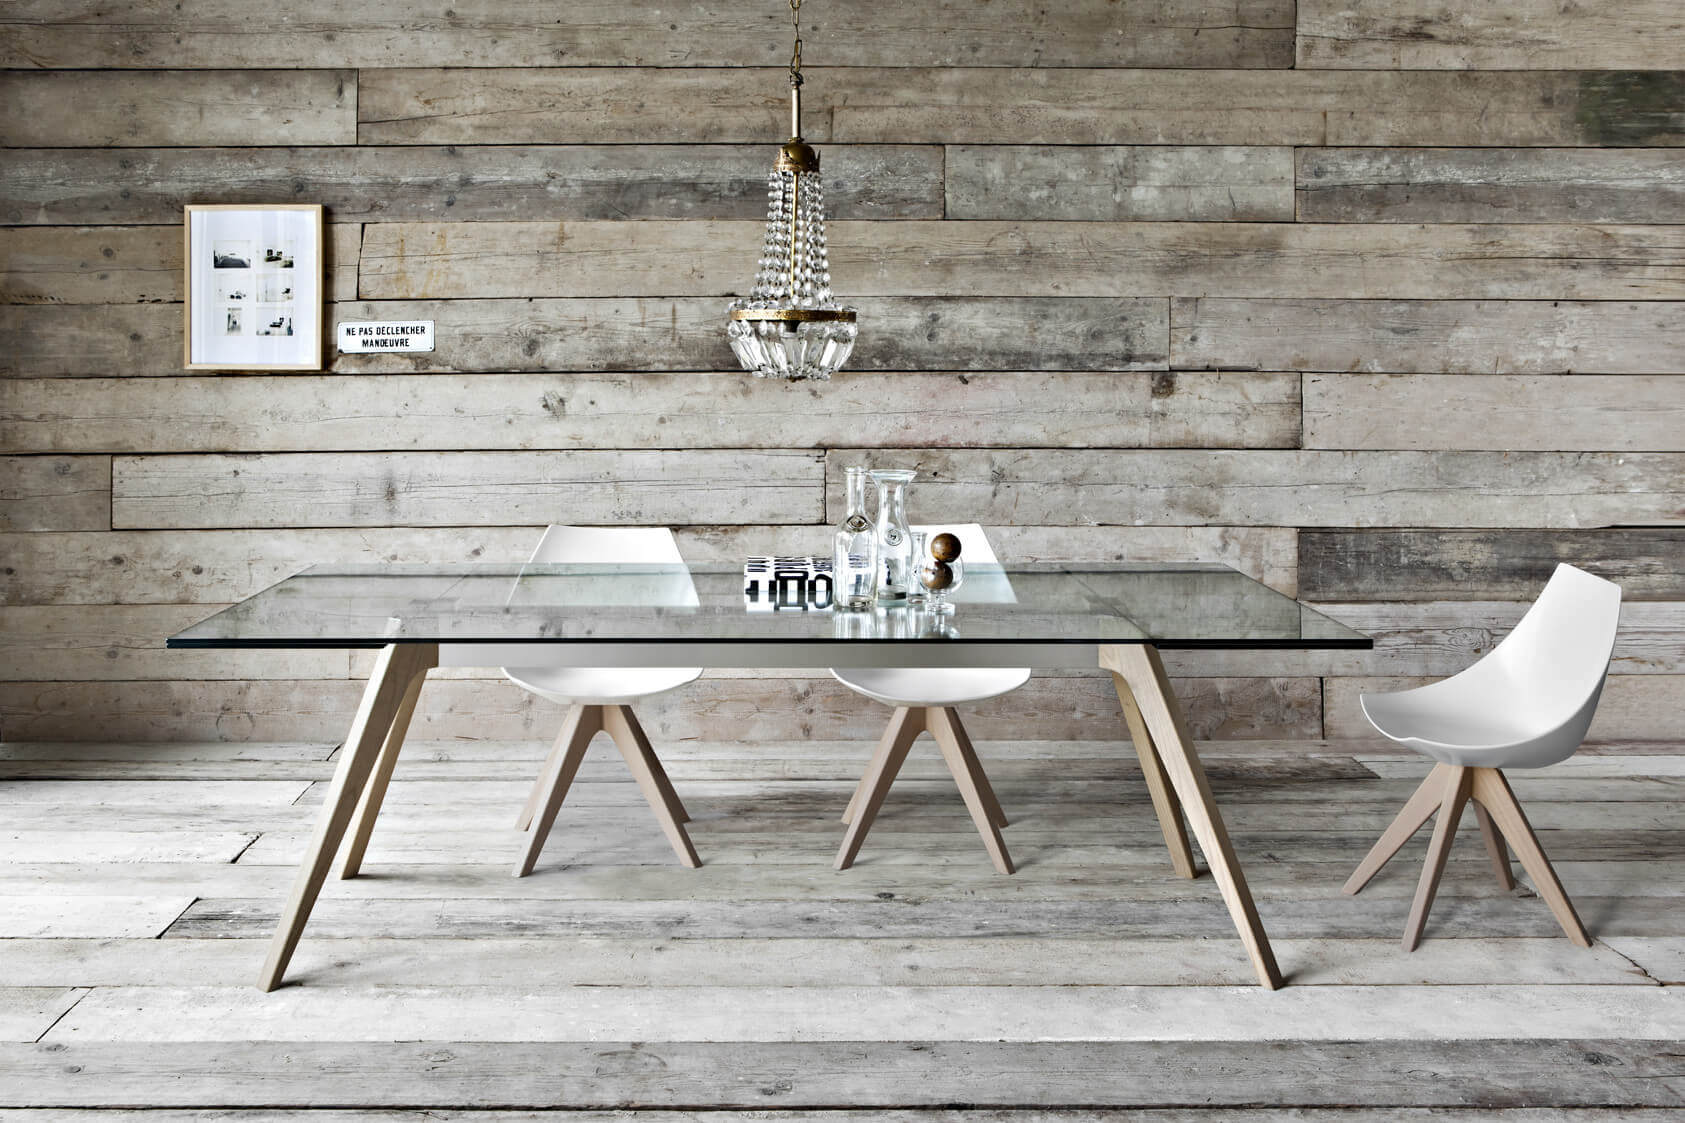 This is one of the types of dining room tables that impress with simplicity. A modern table for six made of glass and with light color wood as feet. A small chandelier is placed up top the table. The walls are made of the same wood and in the same design as the floor for a grater visual effect.